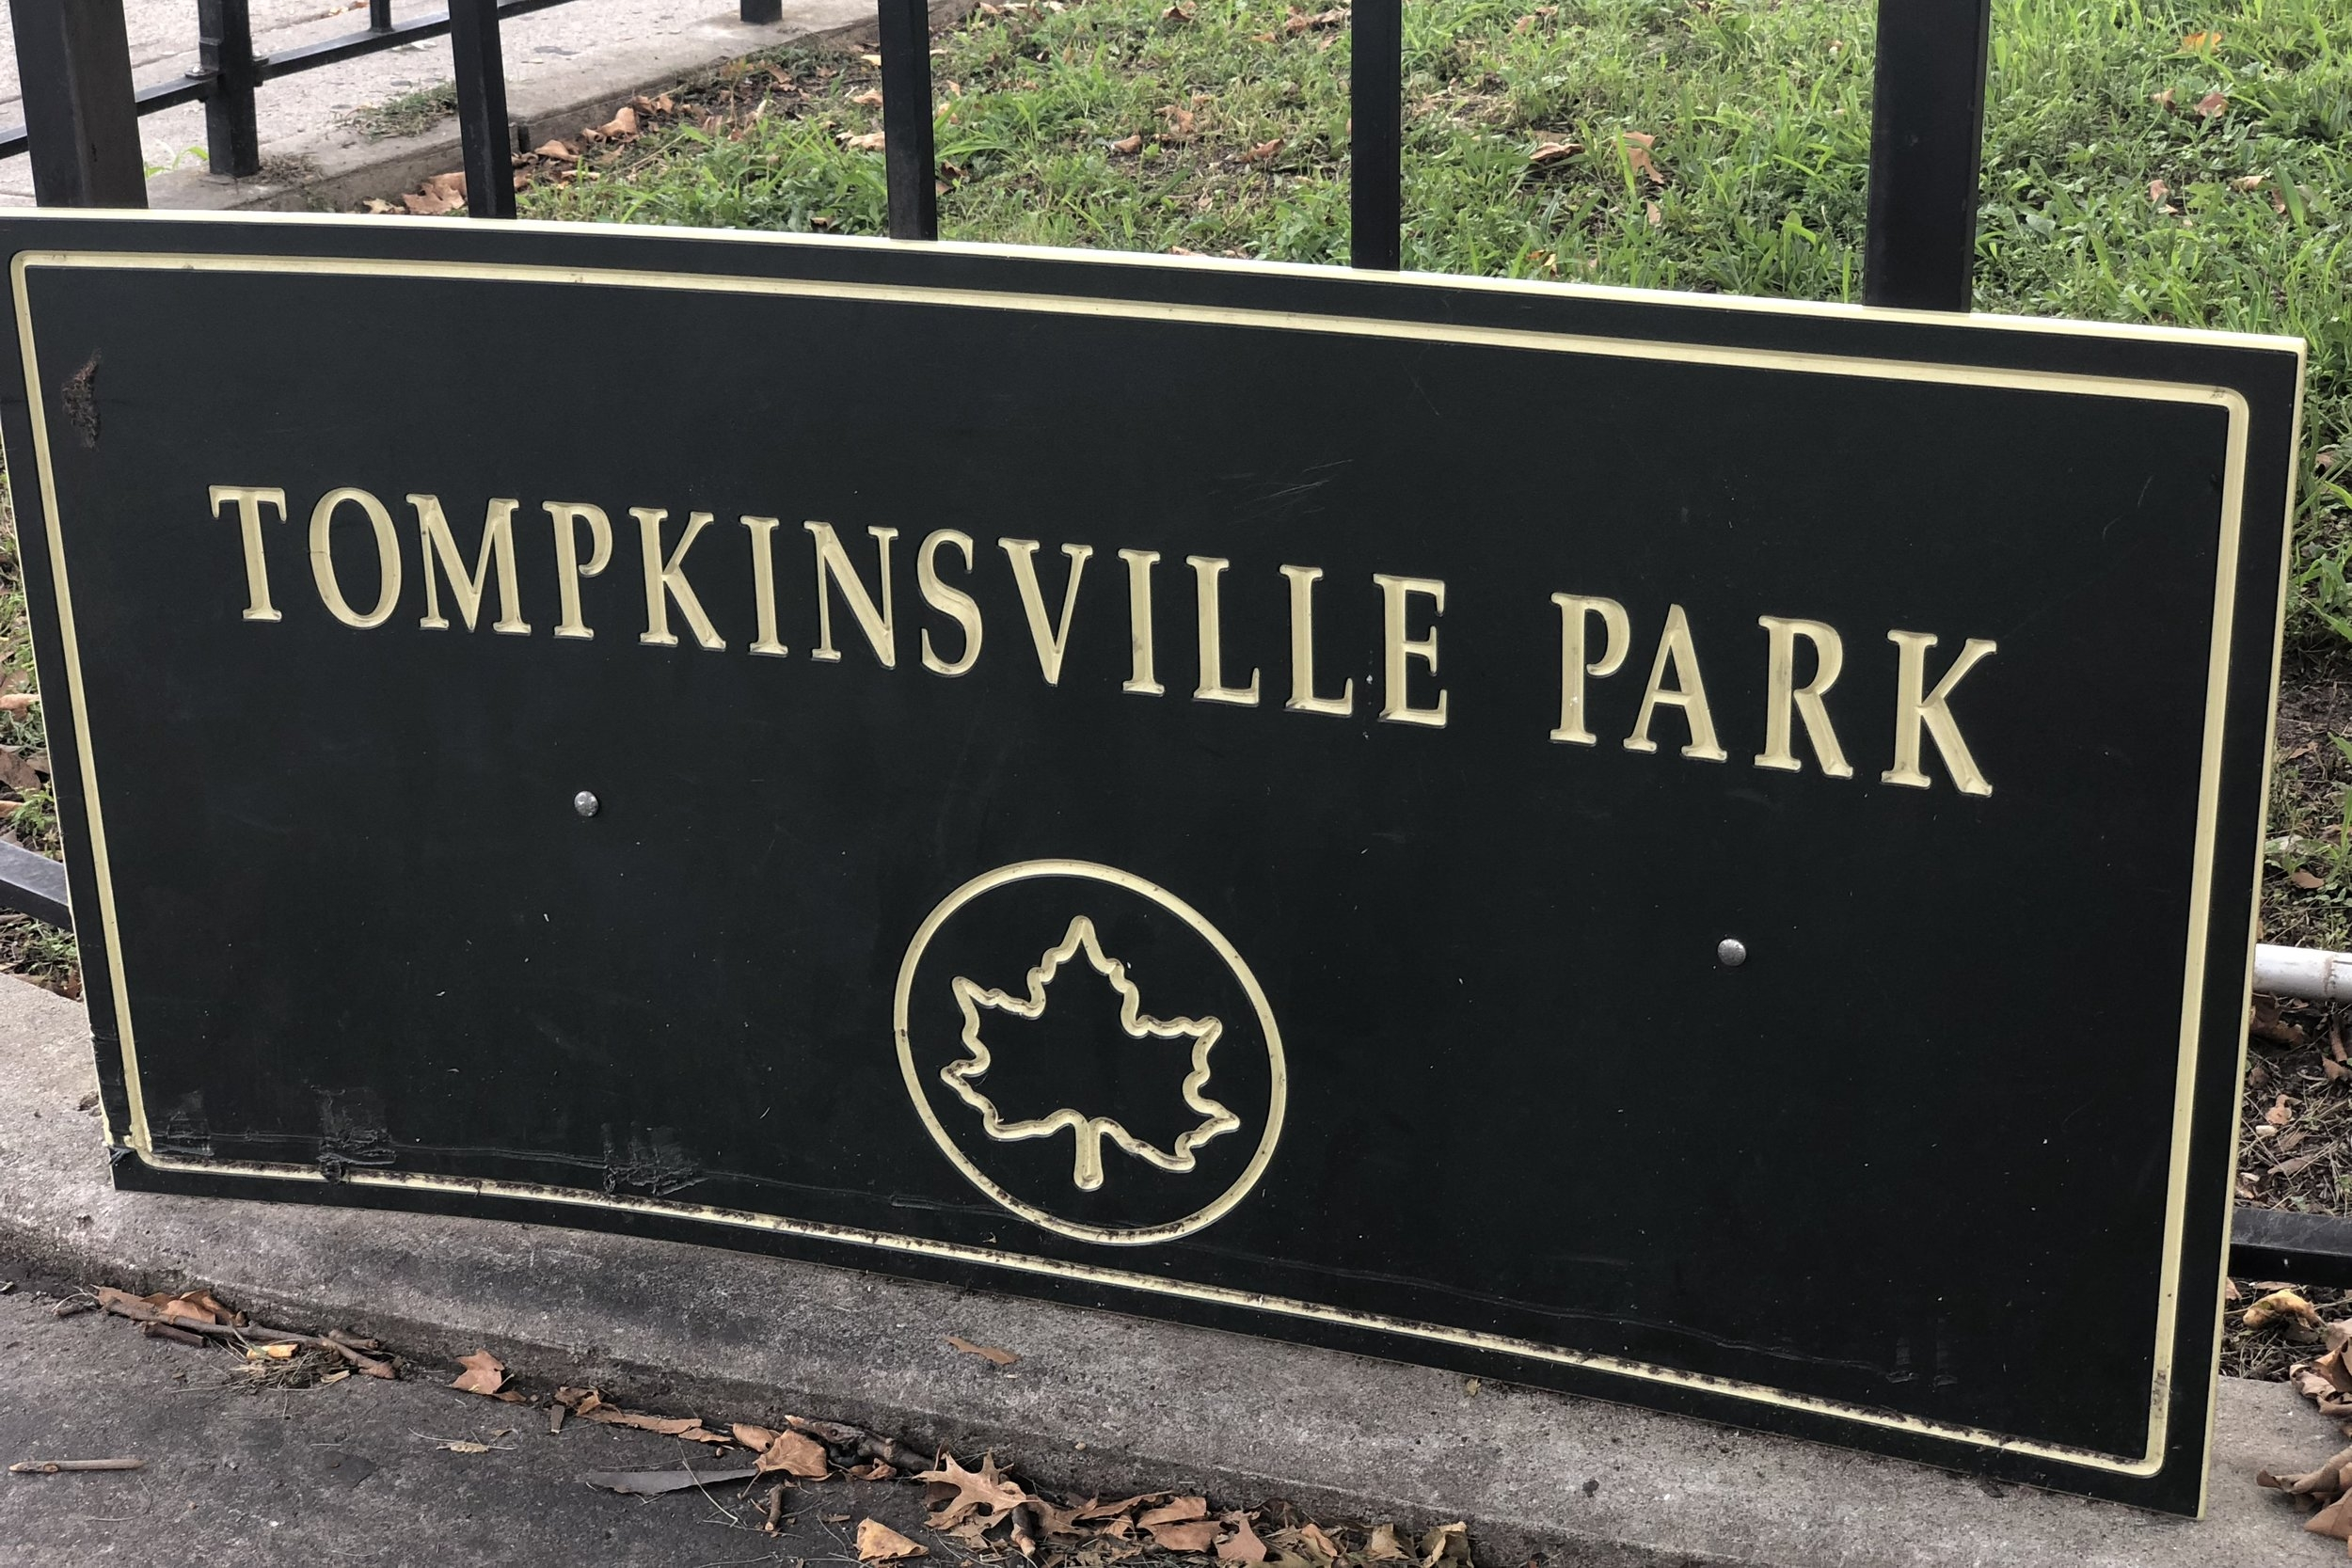 Tompkinsville Park - Tompkinsville Park, built in the 1930s, serves as the heart of the neighborhood. Fountains, benches, and public art make for a relaxing plaza for those resting or passing through.Bay Street, Staten Island, NY 10301nycgovparks.org/parks/tompkinsville-park